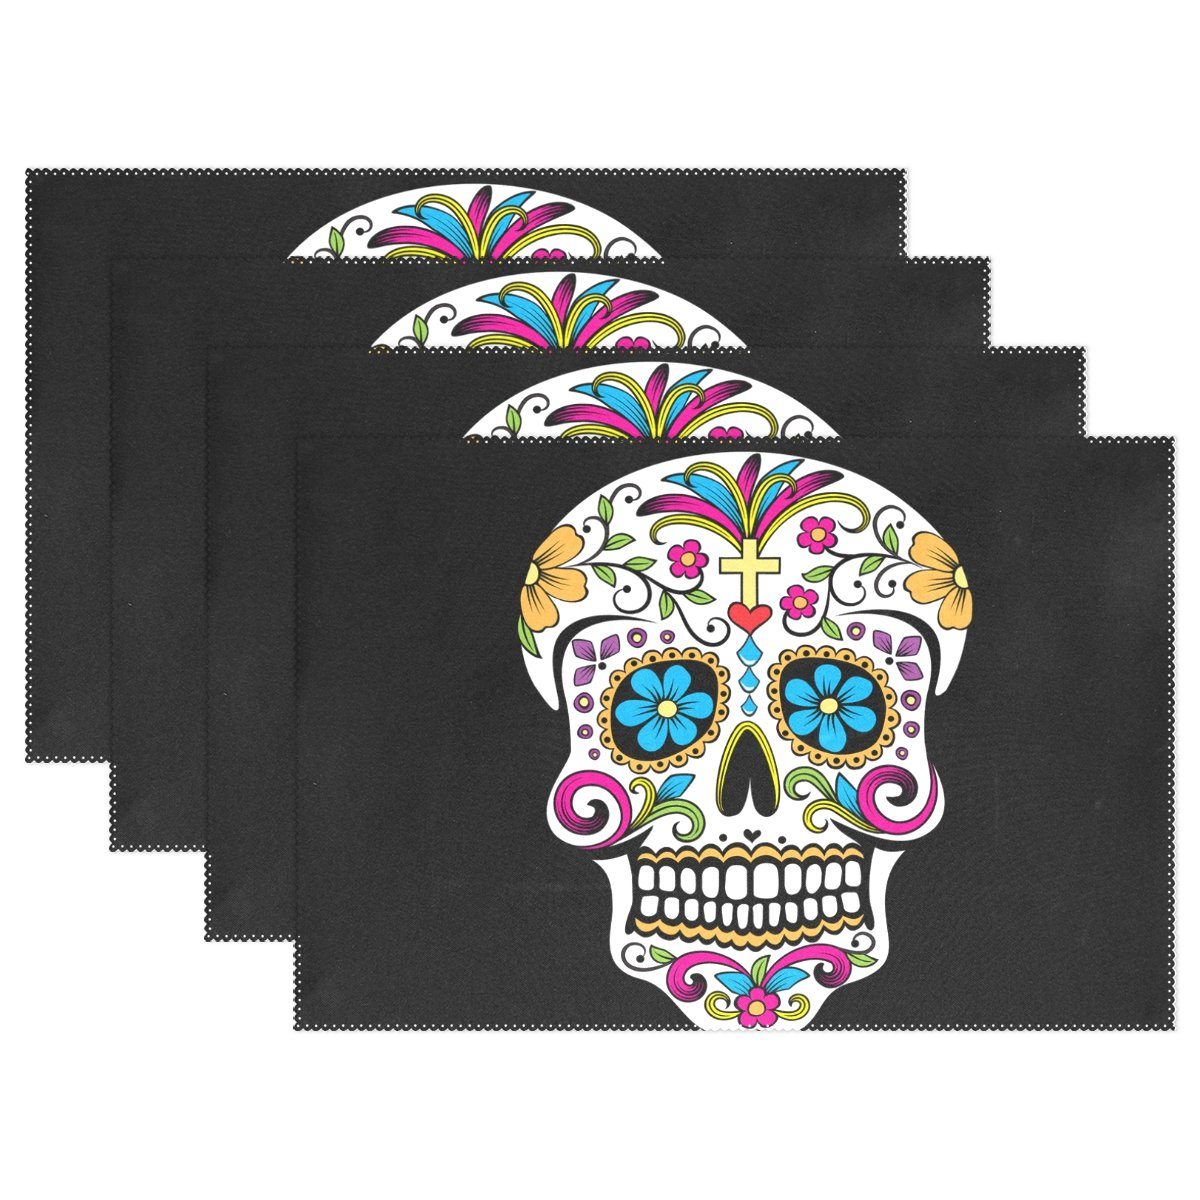 Naanle Floral Skull Placemats Set of 4, Mexican Skull Day of The Dead Heat-Resistant Washable Table Place Mats for Kitchen Dining Table Decoration